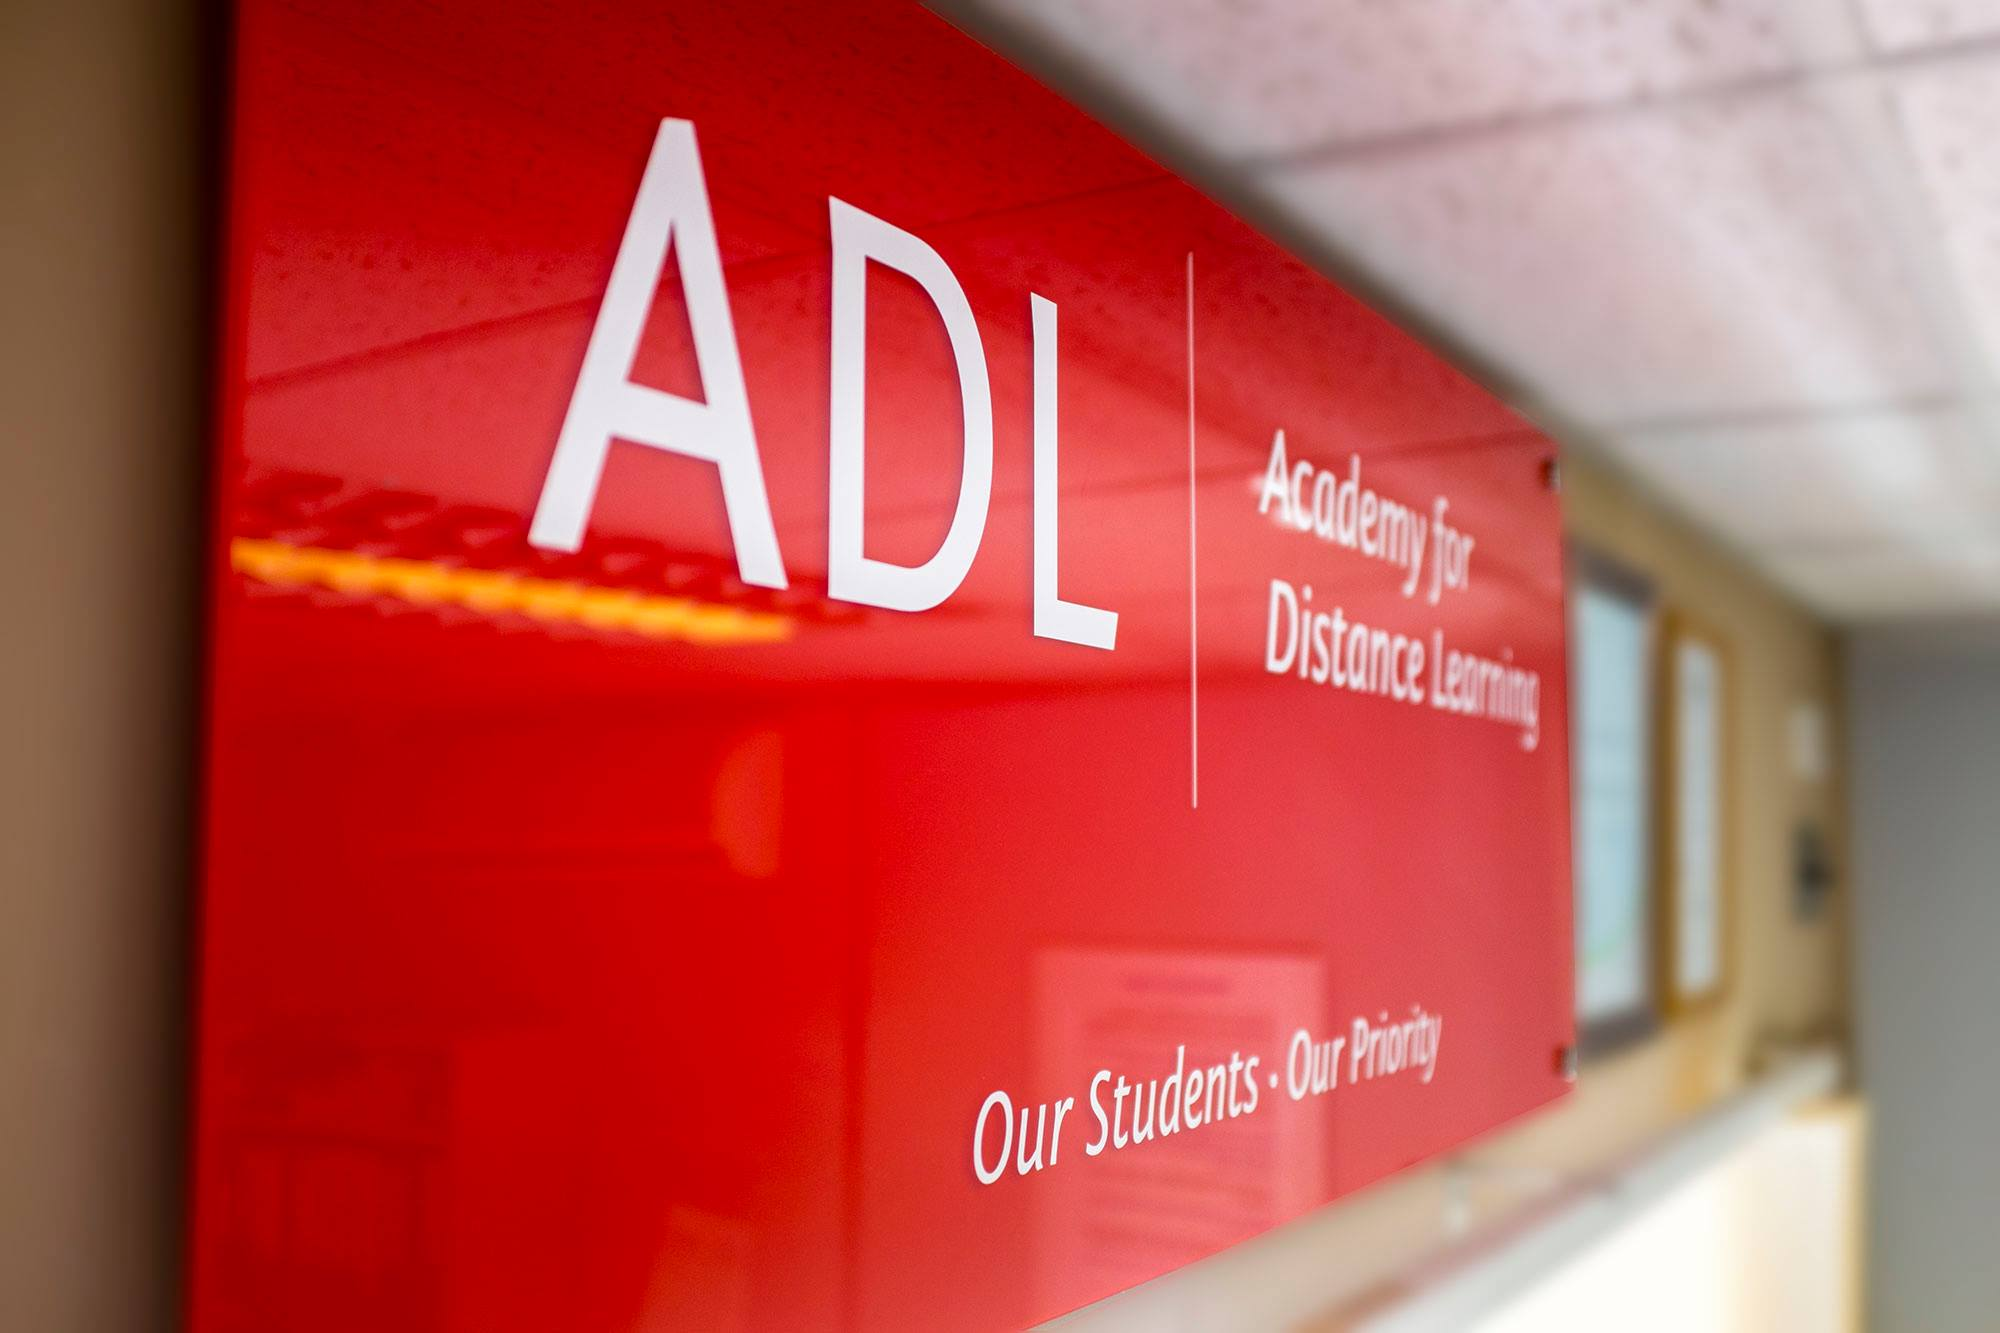 ADL Banner from the office